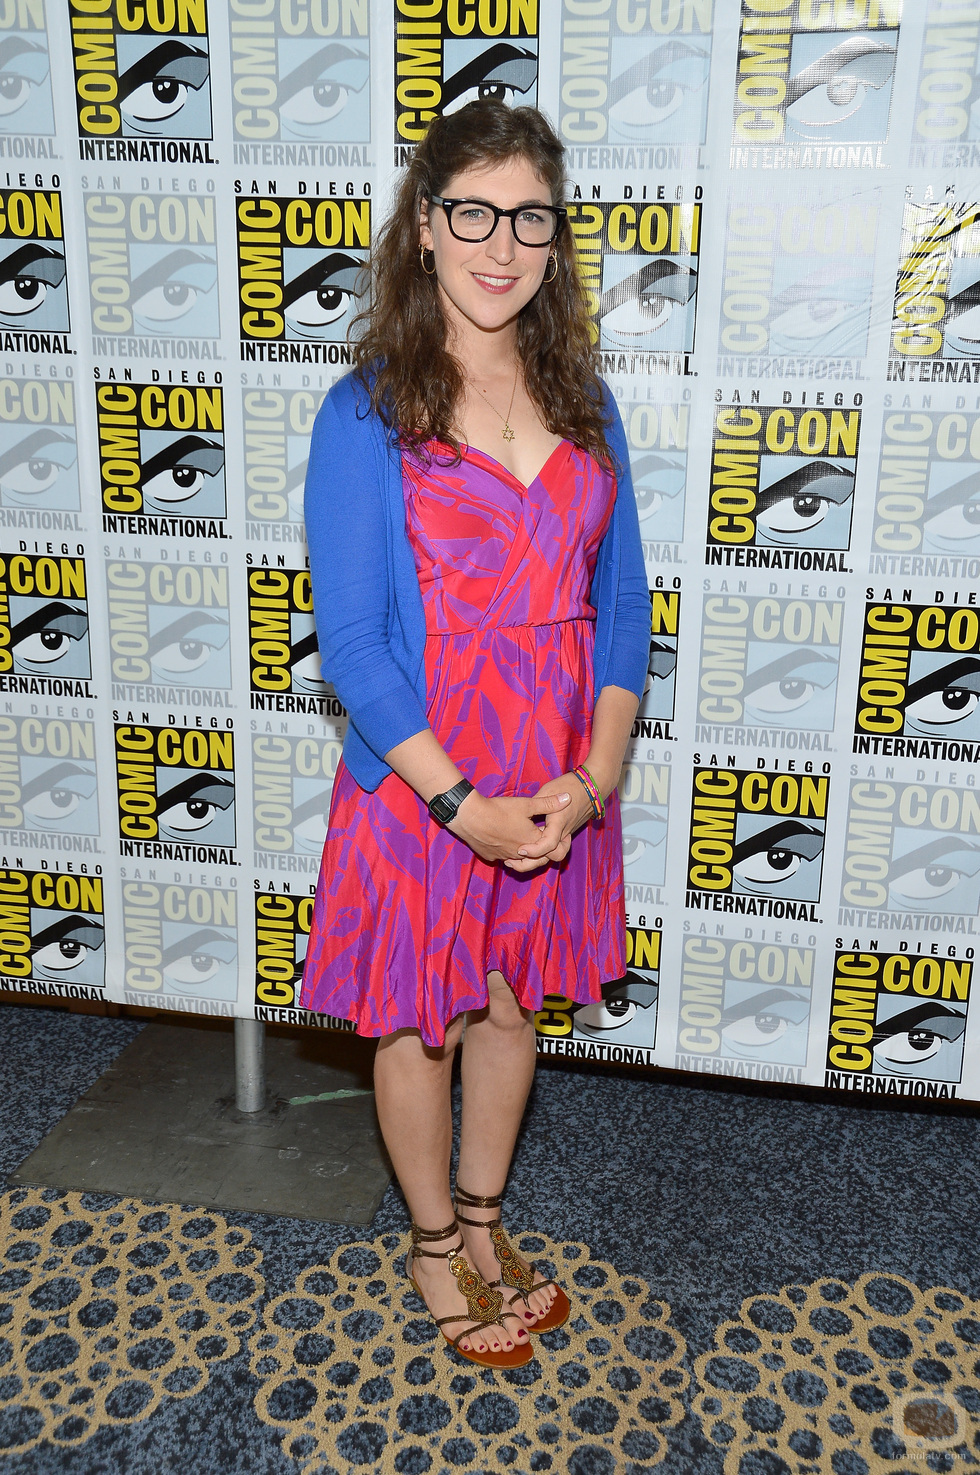 mayim bialik ethnic background